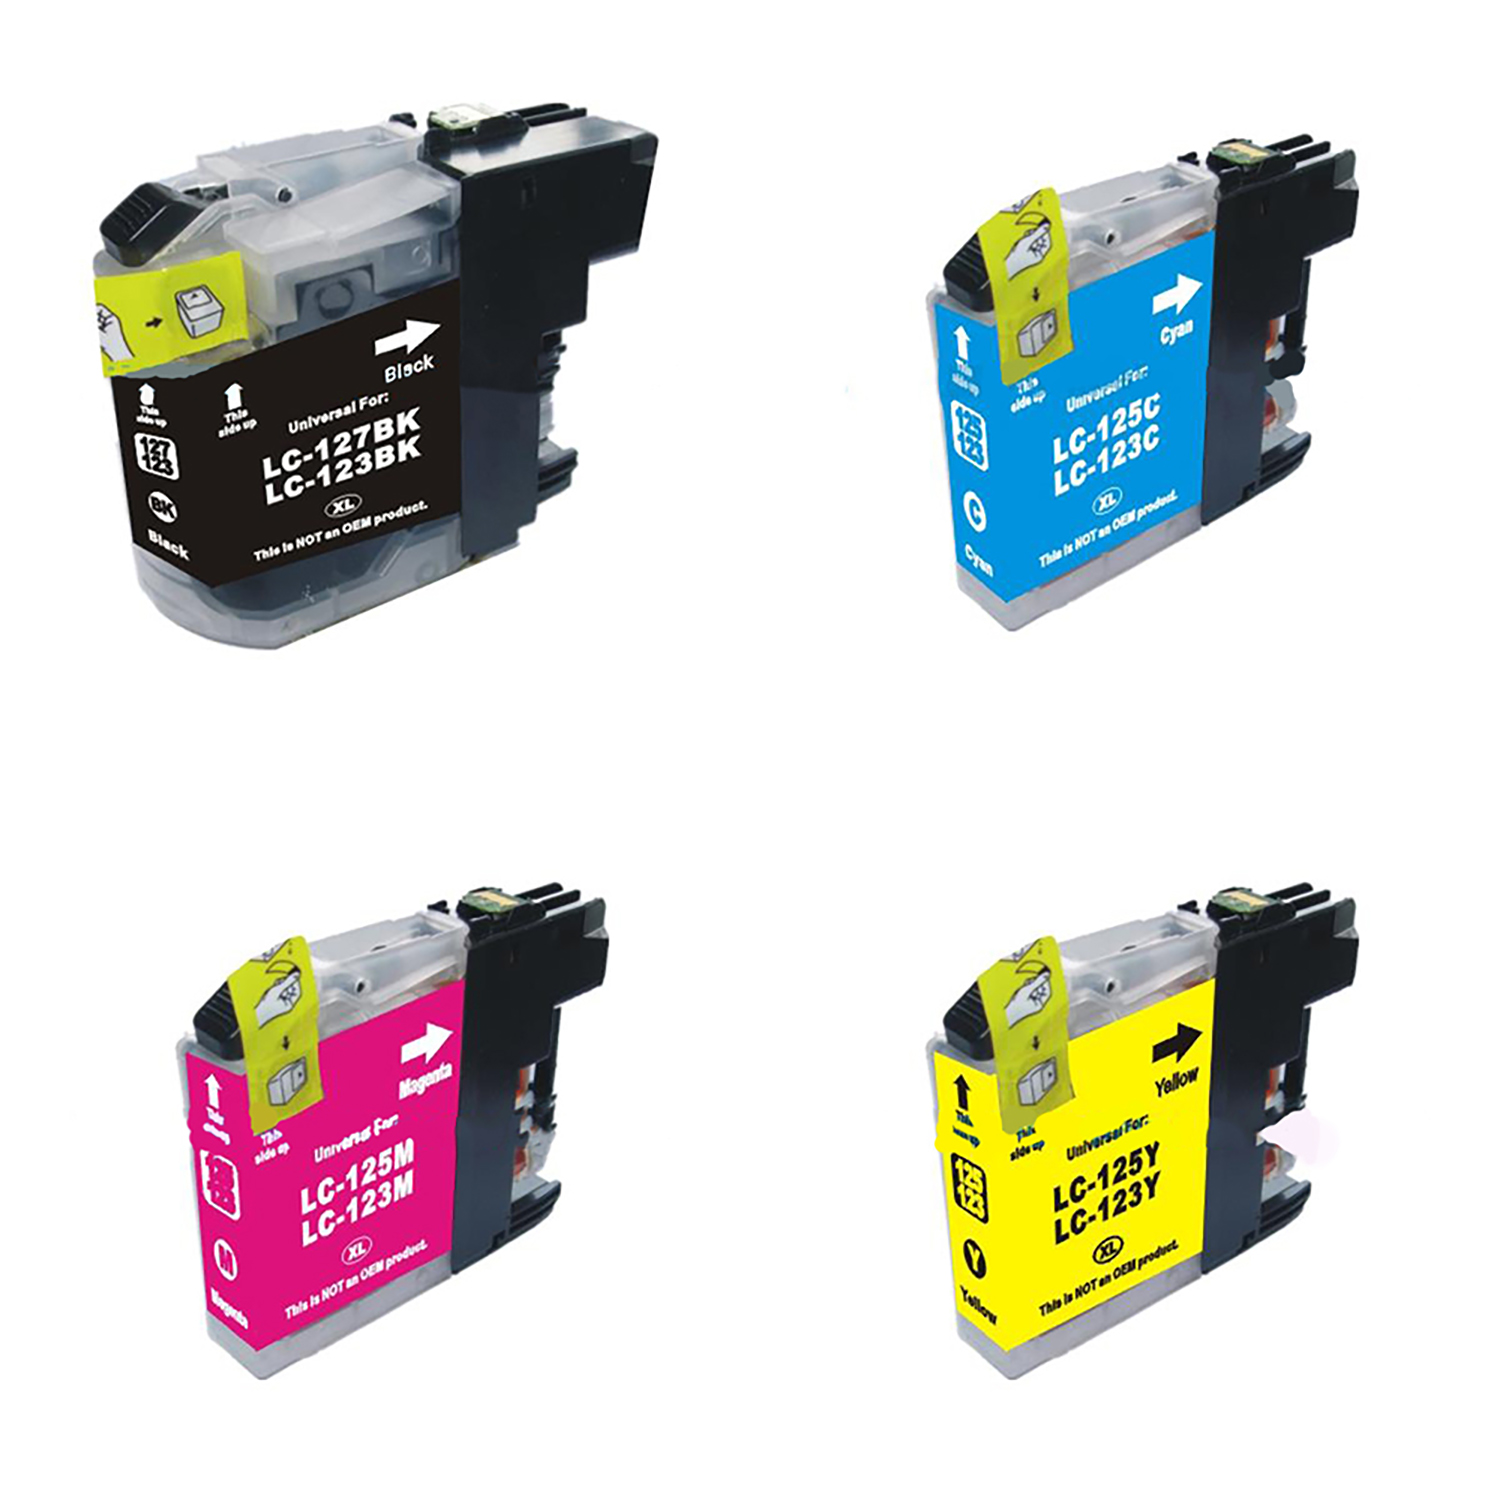 Ink cartridges 5 Star Value Remanufactured Inkjet Cartridge Page Life 600pp B/C/M/Y [Brother LC123 Alternative] [Pack 4]